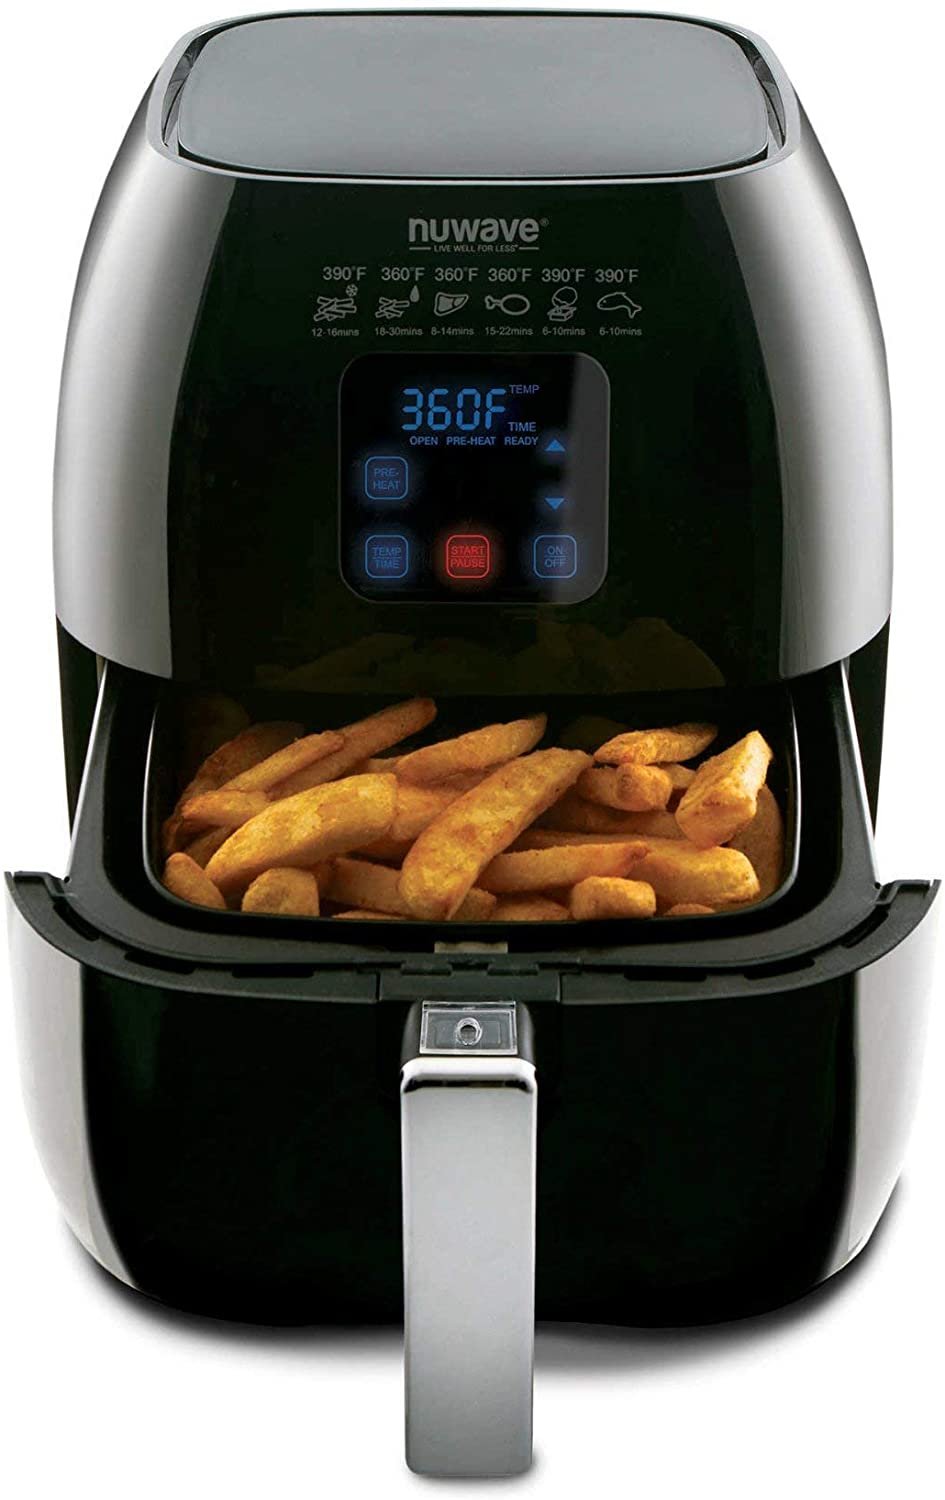 NuWave Versatile Brio Air Fryer with One-Touch Digital Controls